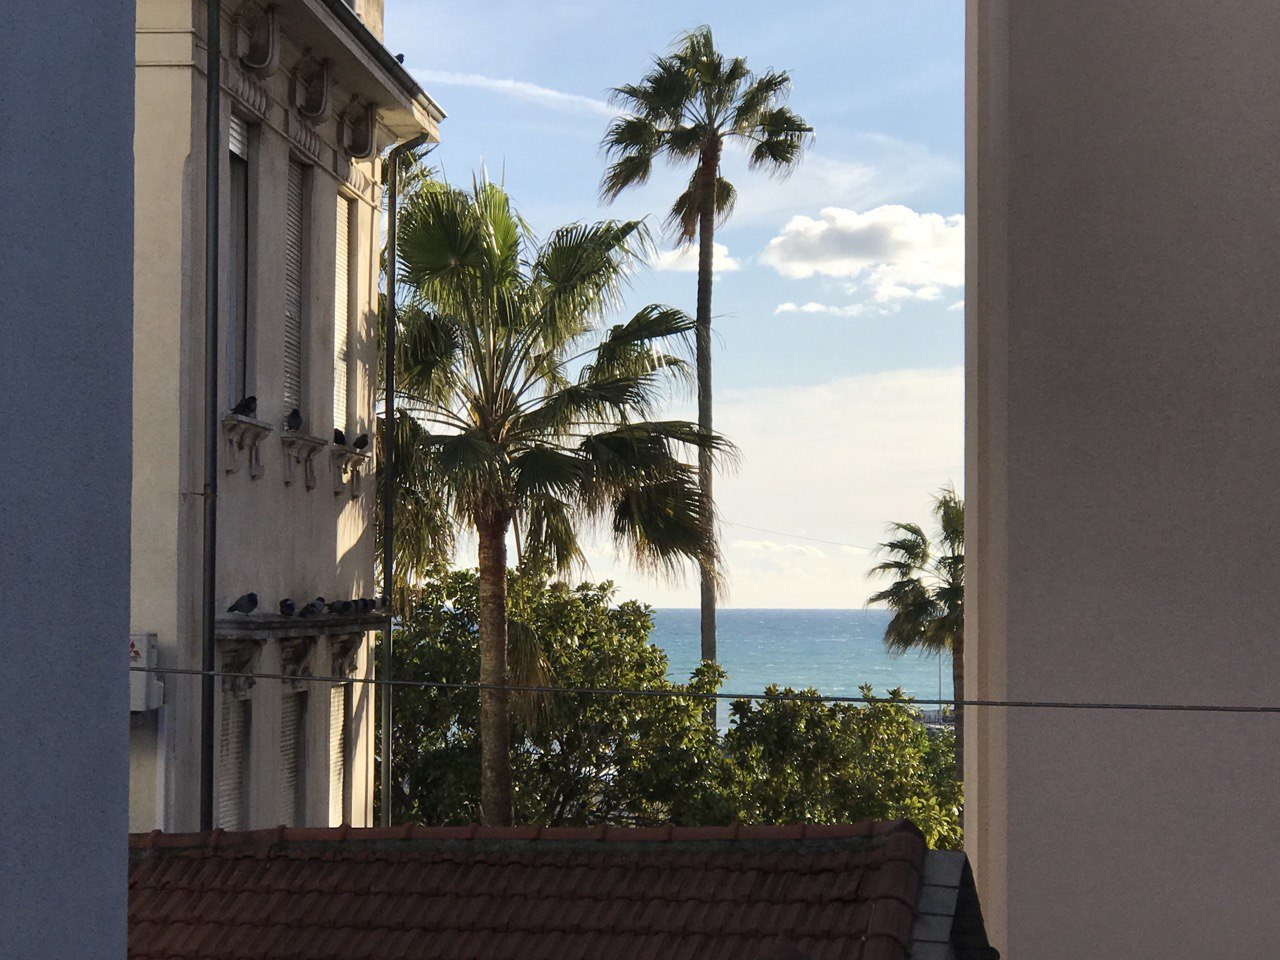 4 room apartment in Center Oneglia with terrace view